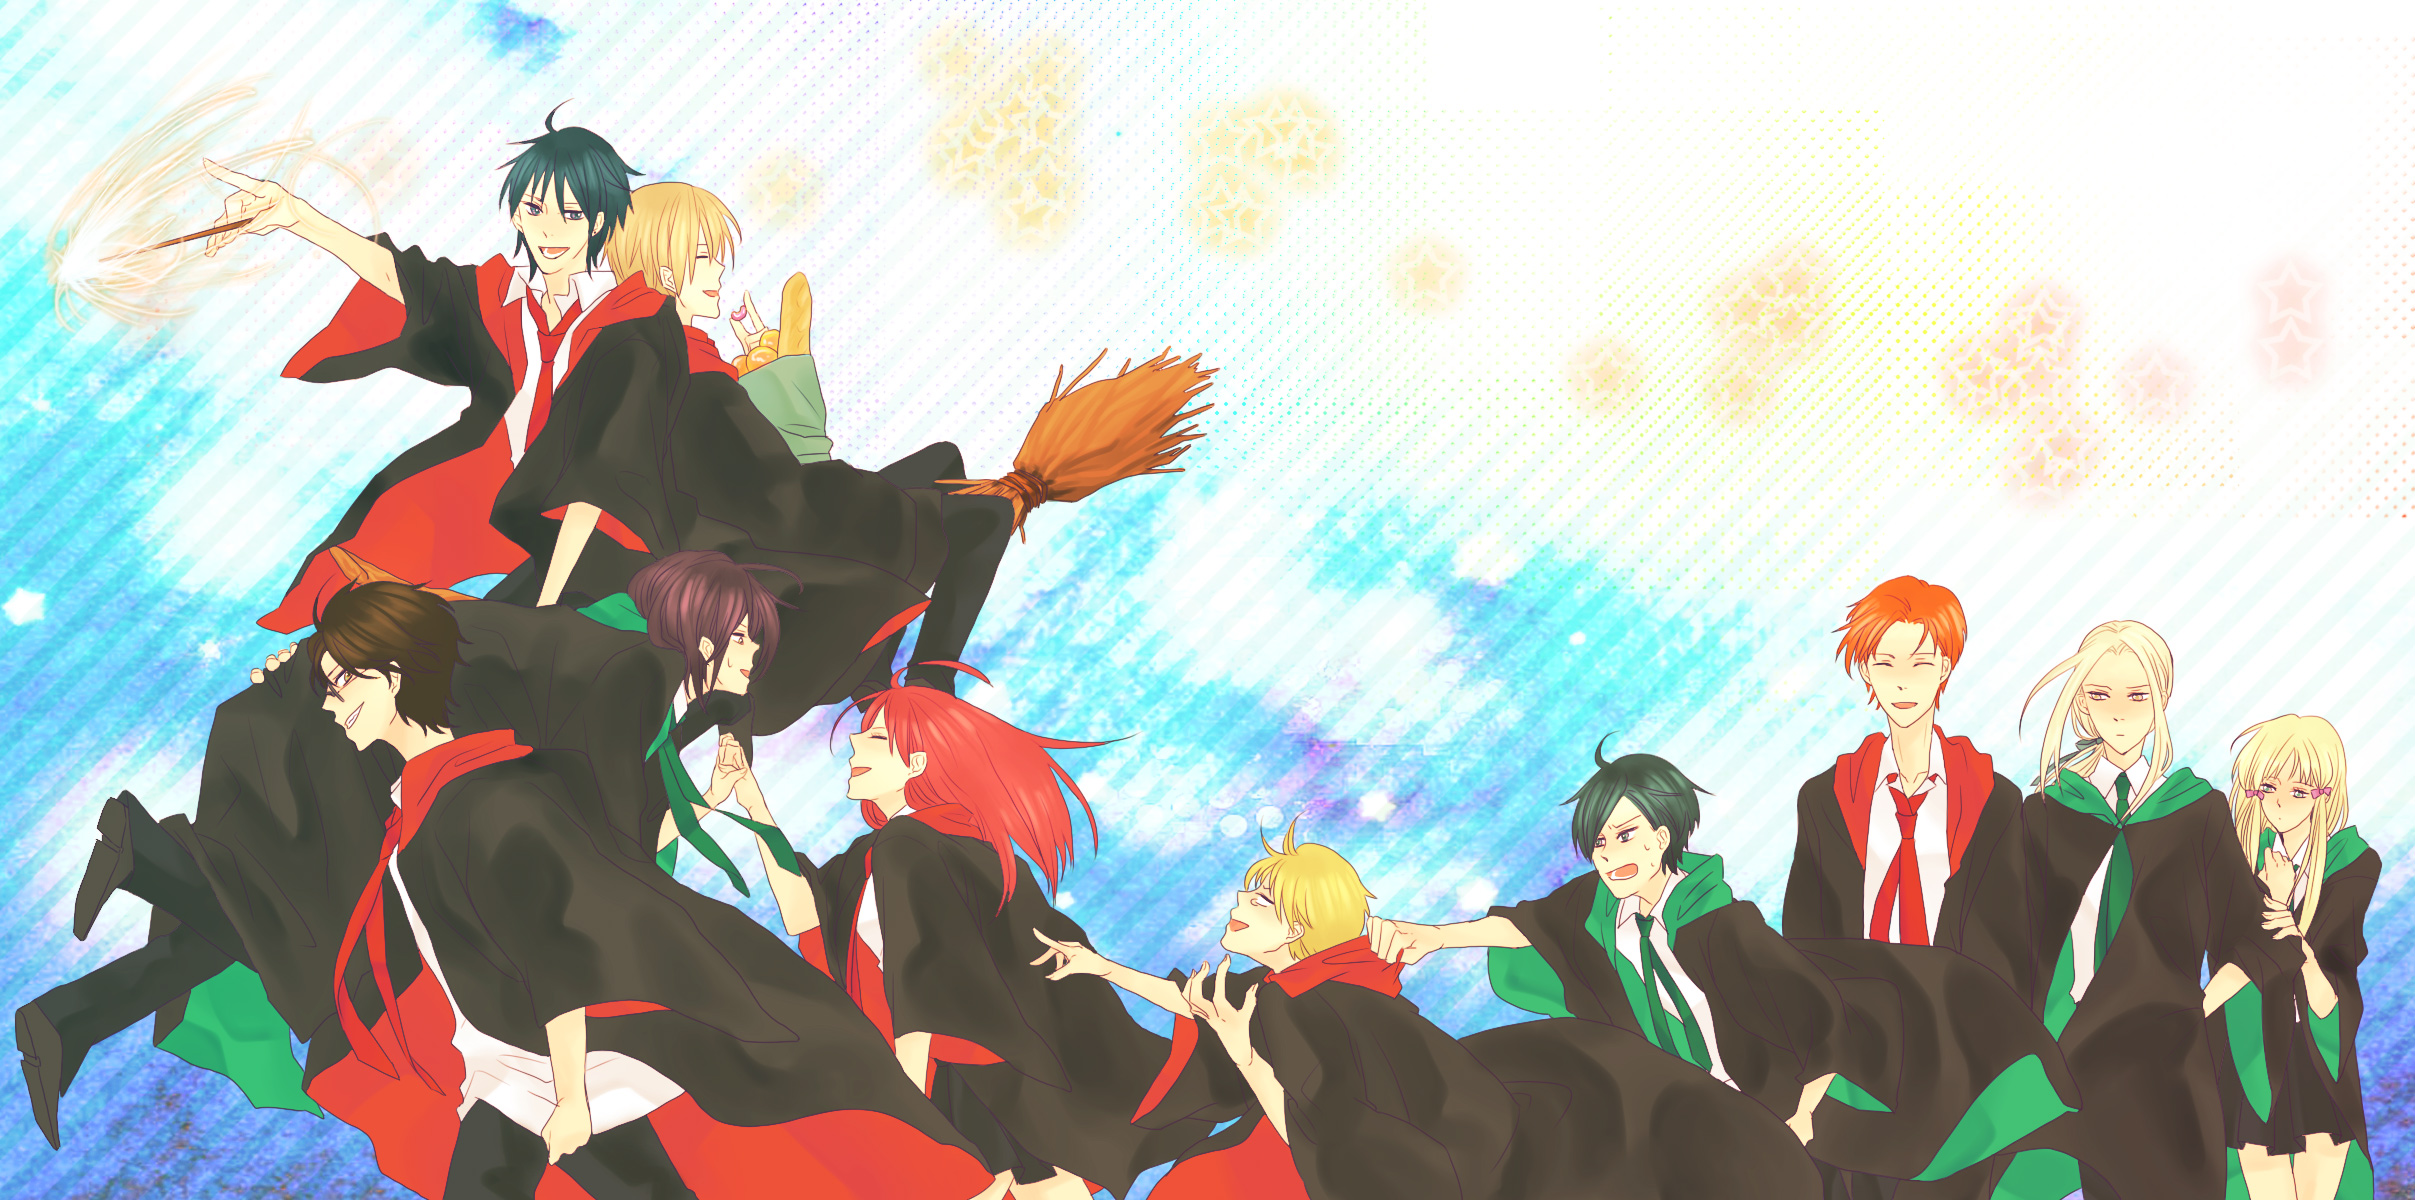 Harry Potter Anime image Marauders HD wallpapers and backgrounds